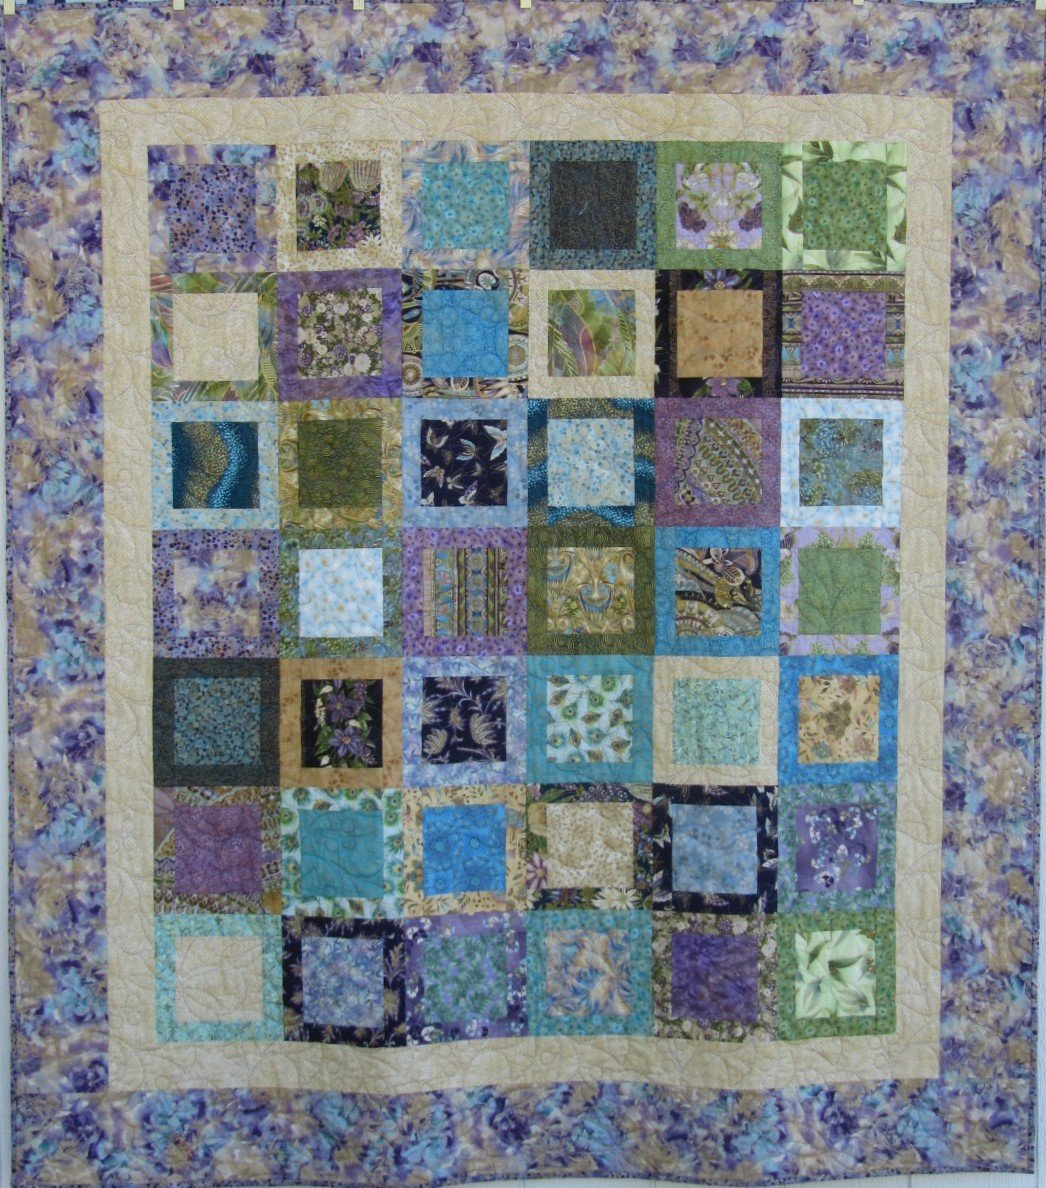 Quilt for Sale:  I've Been Framed 64 x 70